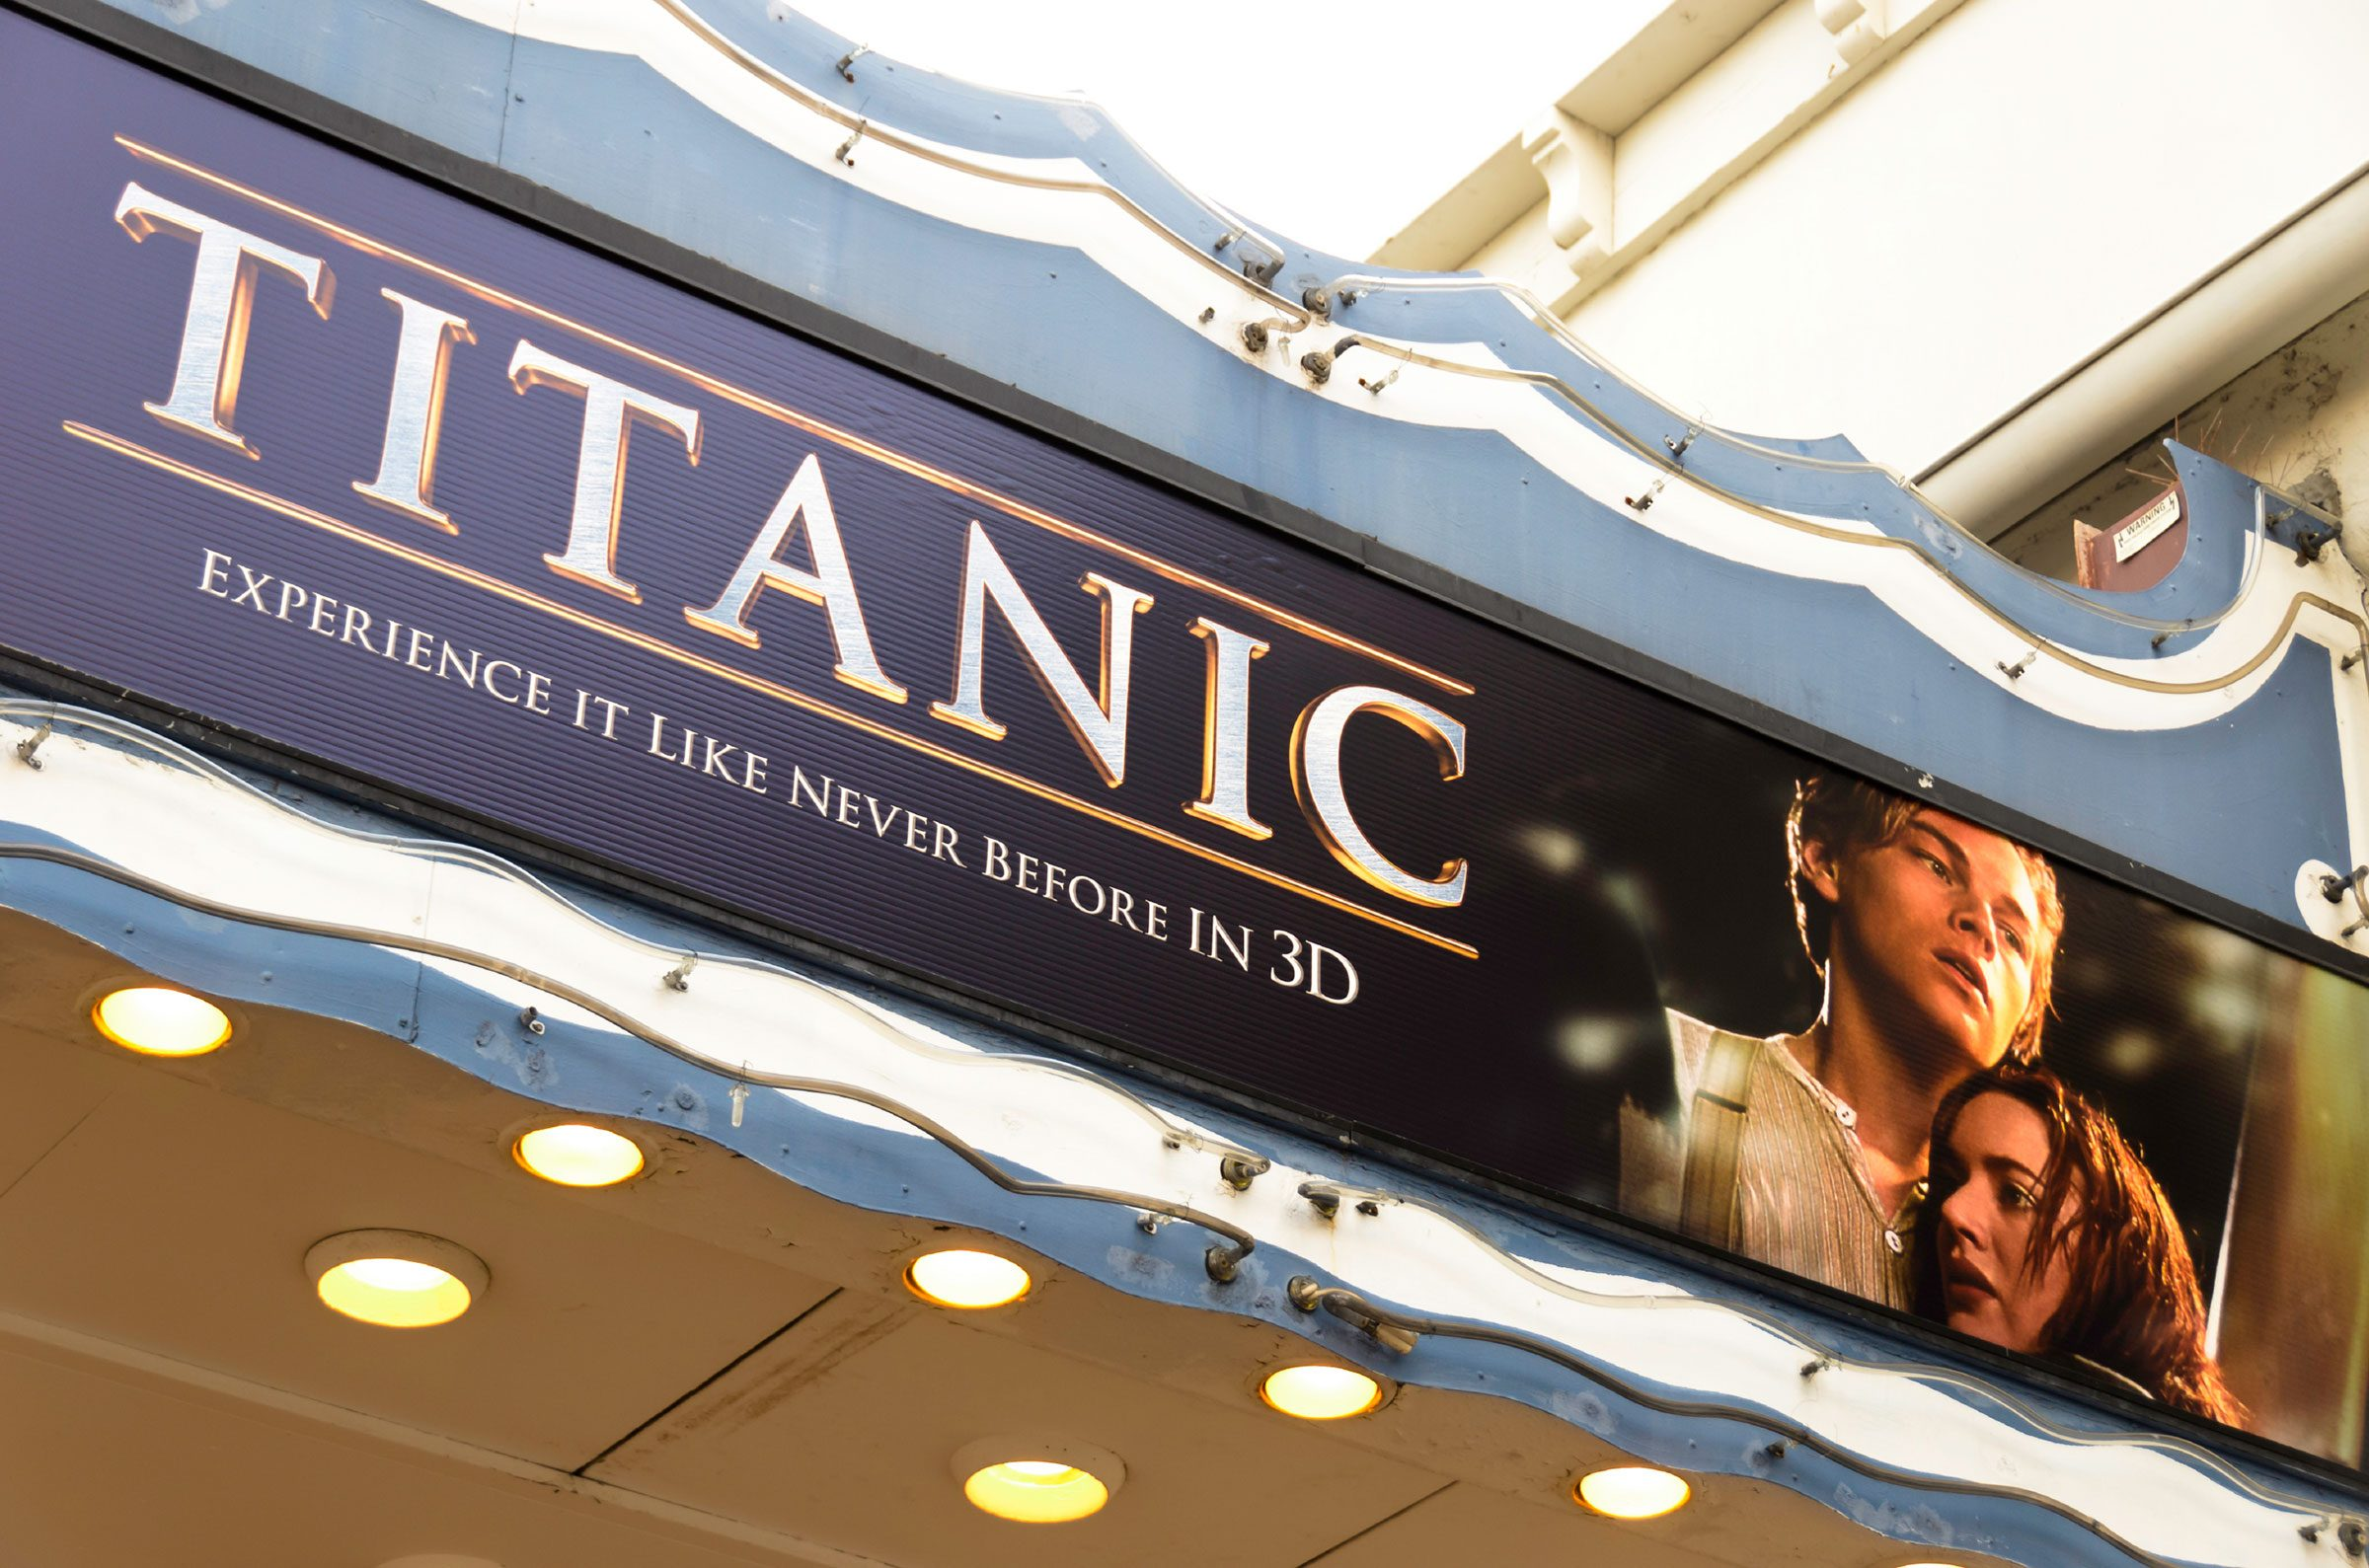 2. Nearly five <i>Titanics</i> could be built with the money James Cameron's <i>Titanic</i> movie has made worldwide